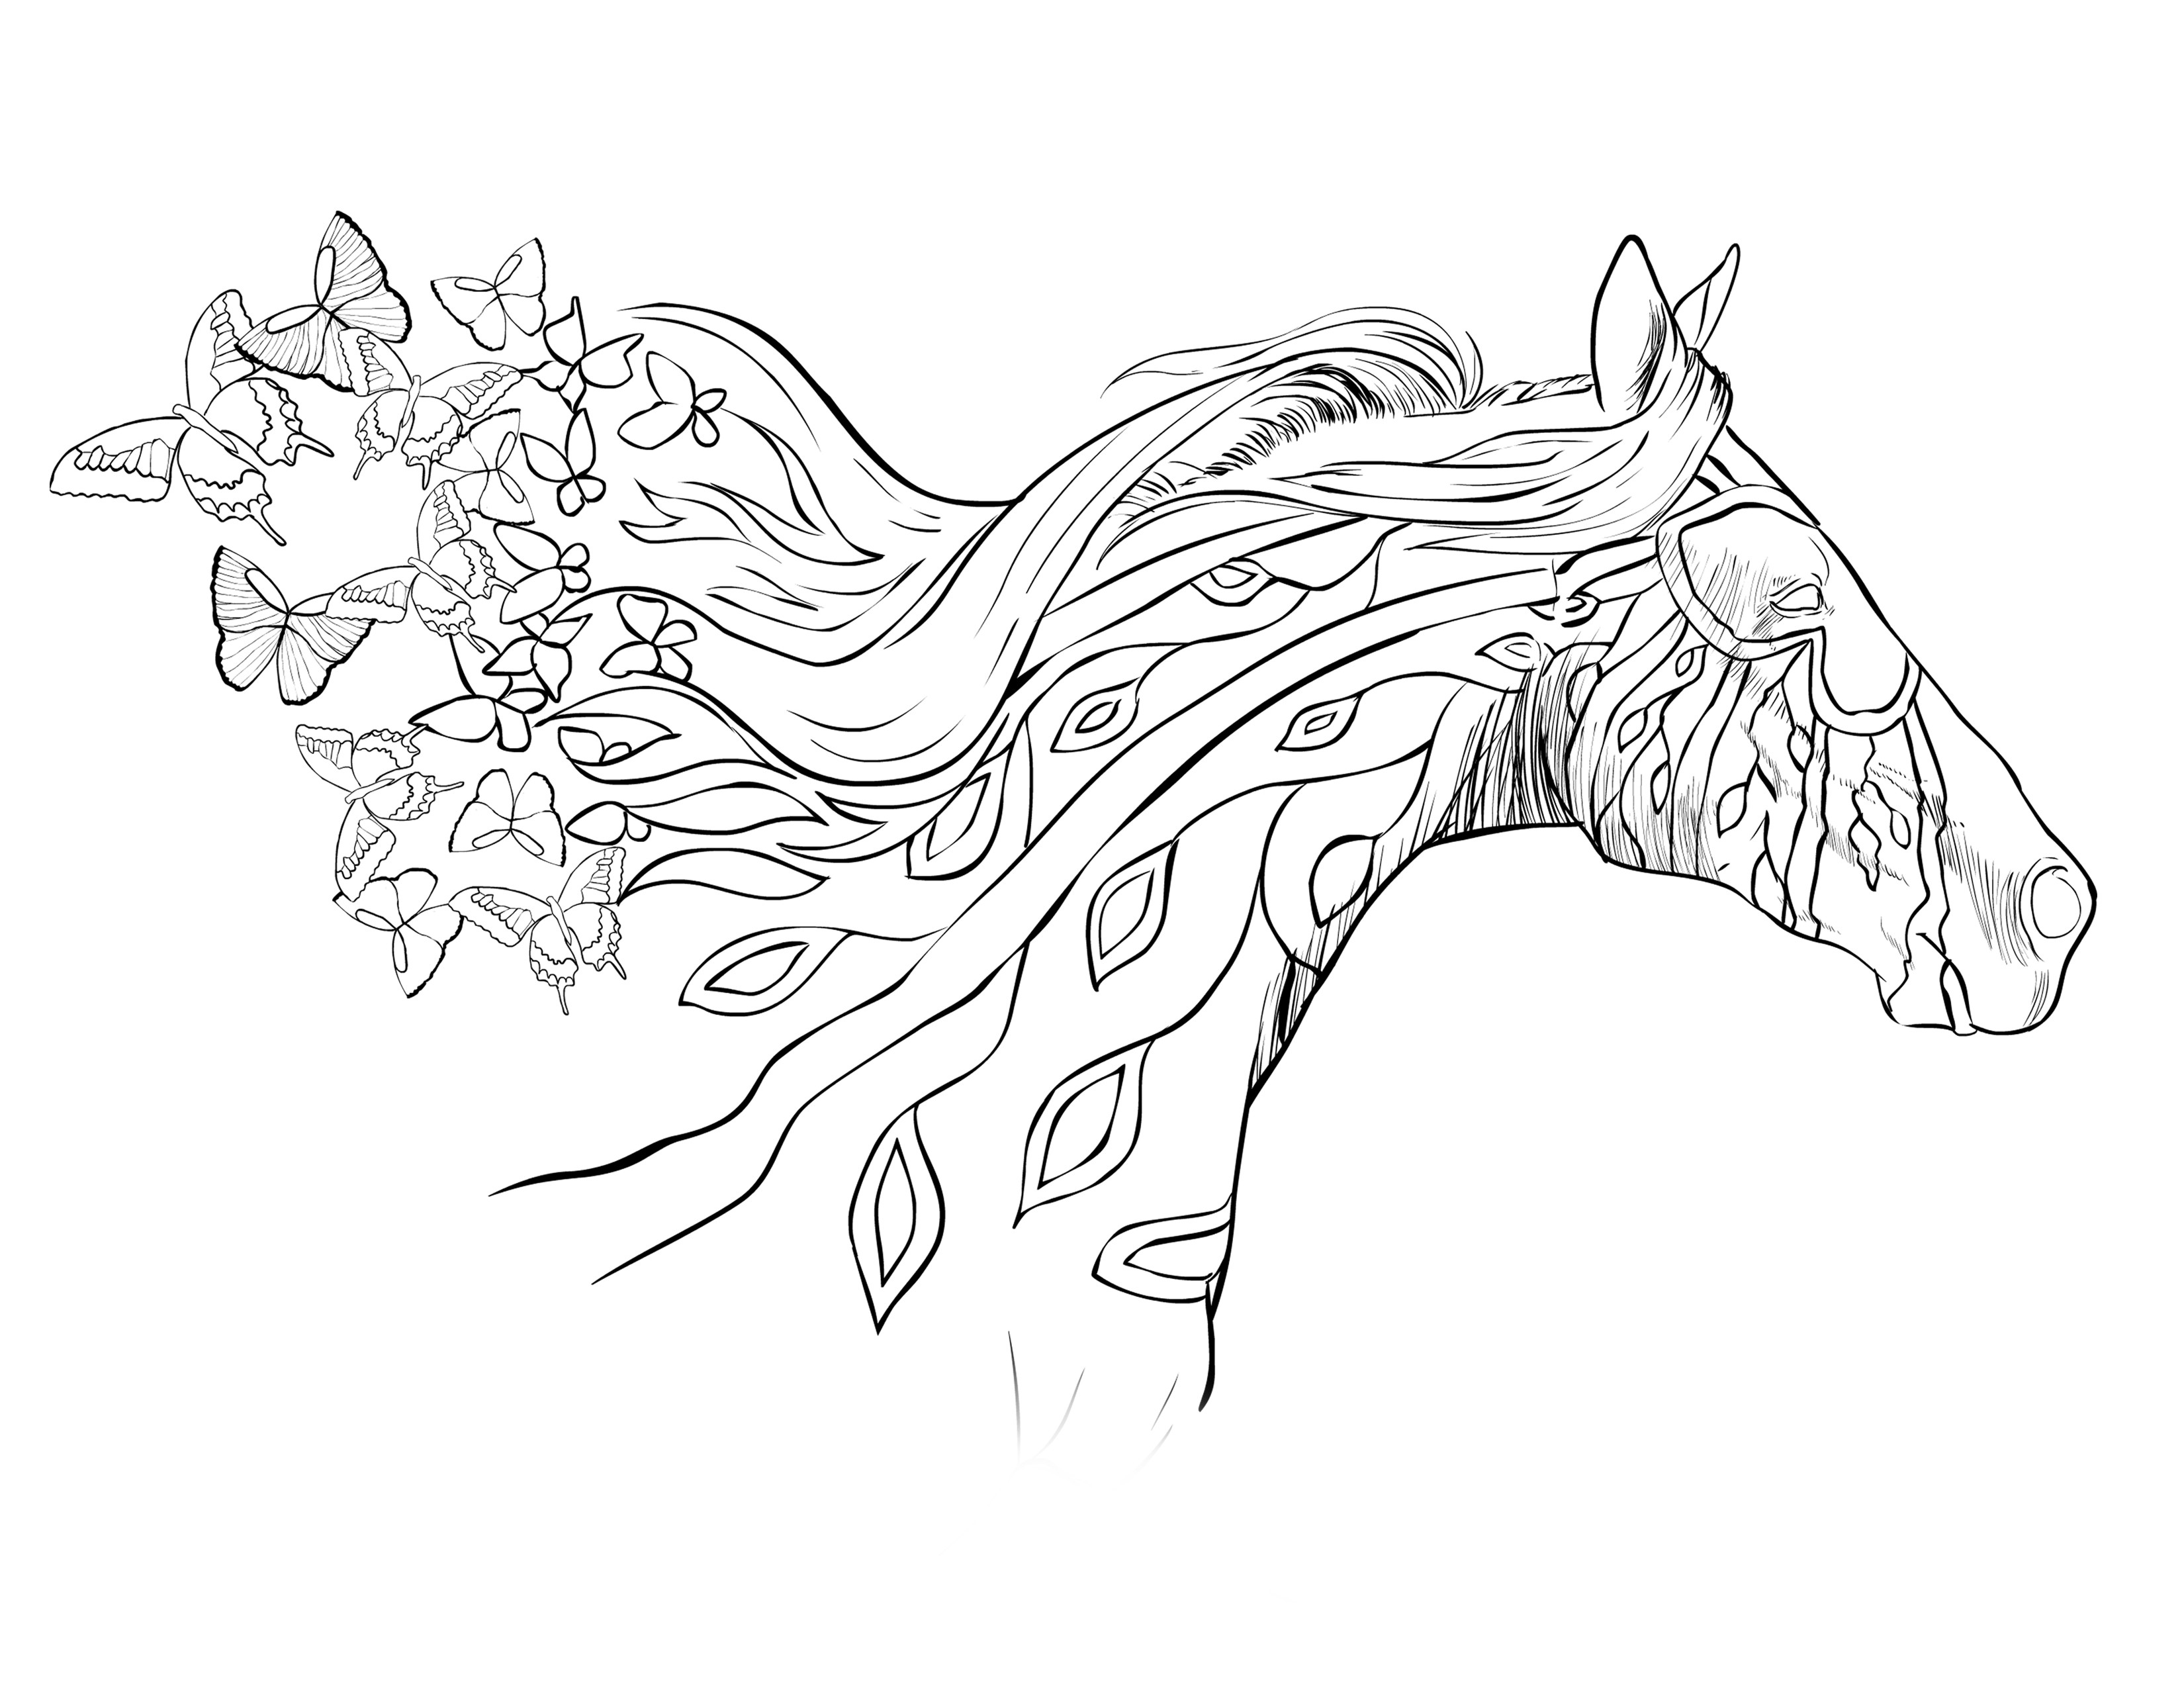 Best ideas about Horses Coloring Pages For Adults . Save or Pin running with the wind Now.